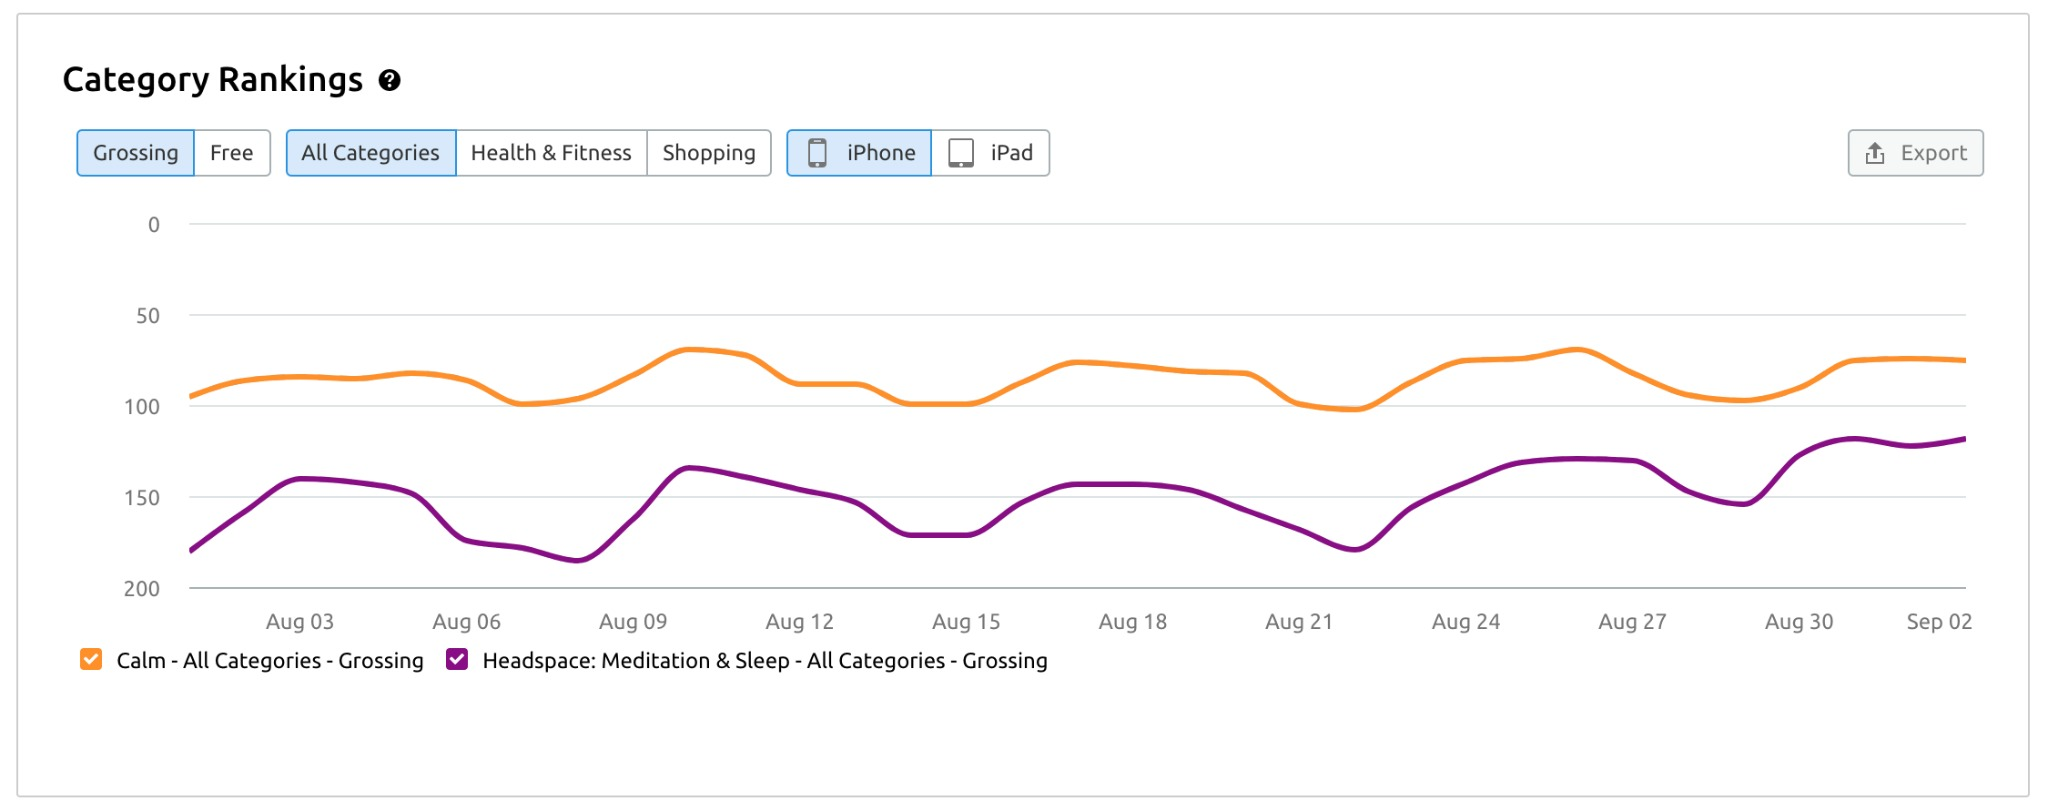 Mobile App Insights image 5